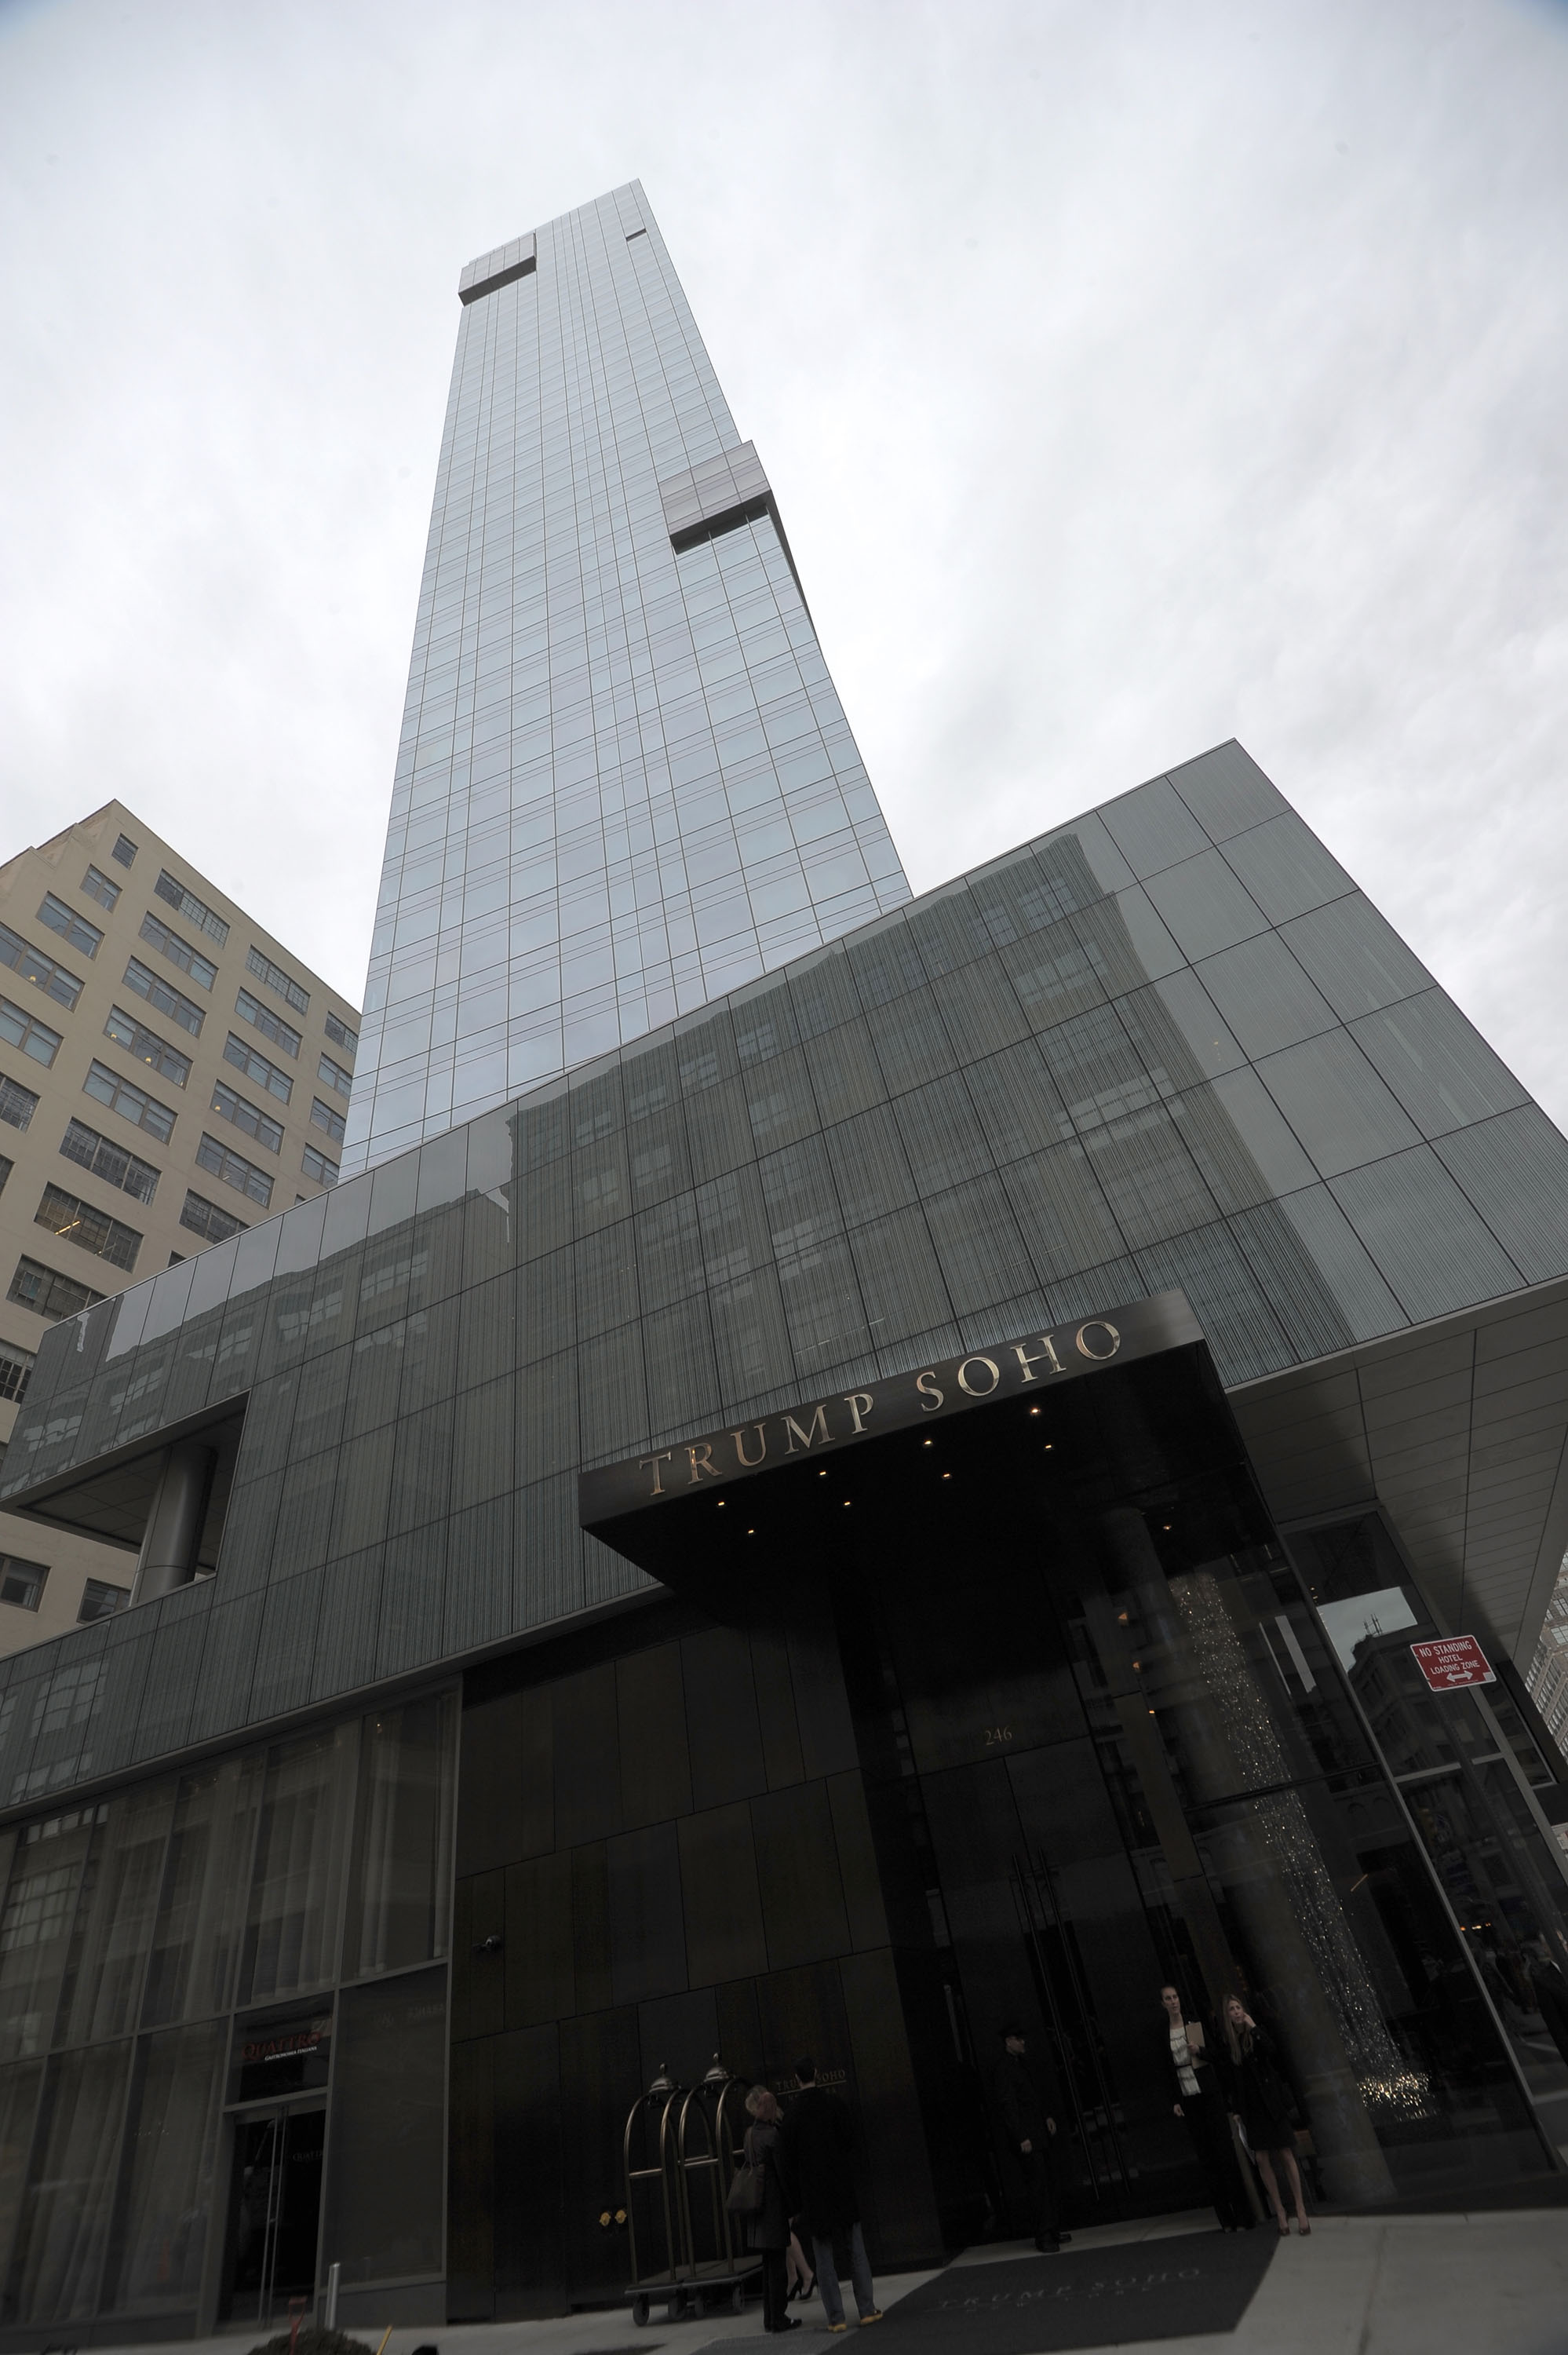 General view of the building exterior during the ribbon cutting ceremony for Trump SoHo New York at Trump SoHo on April 9, 2010 in New York City.